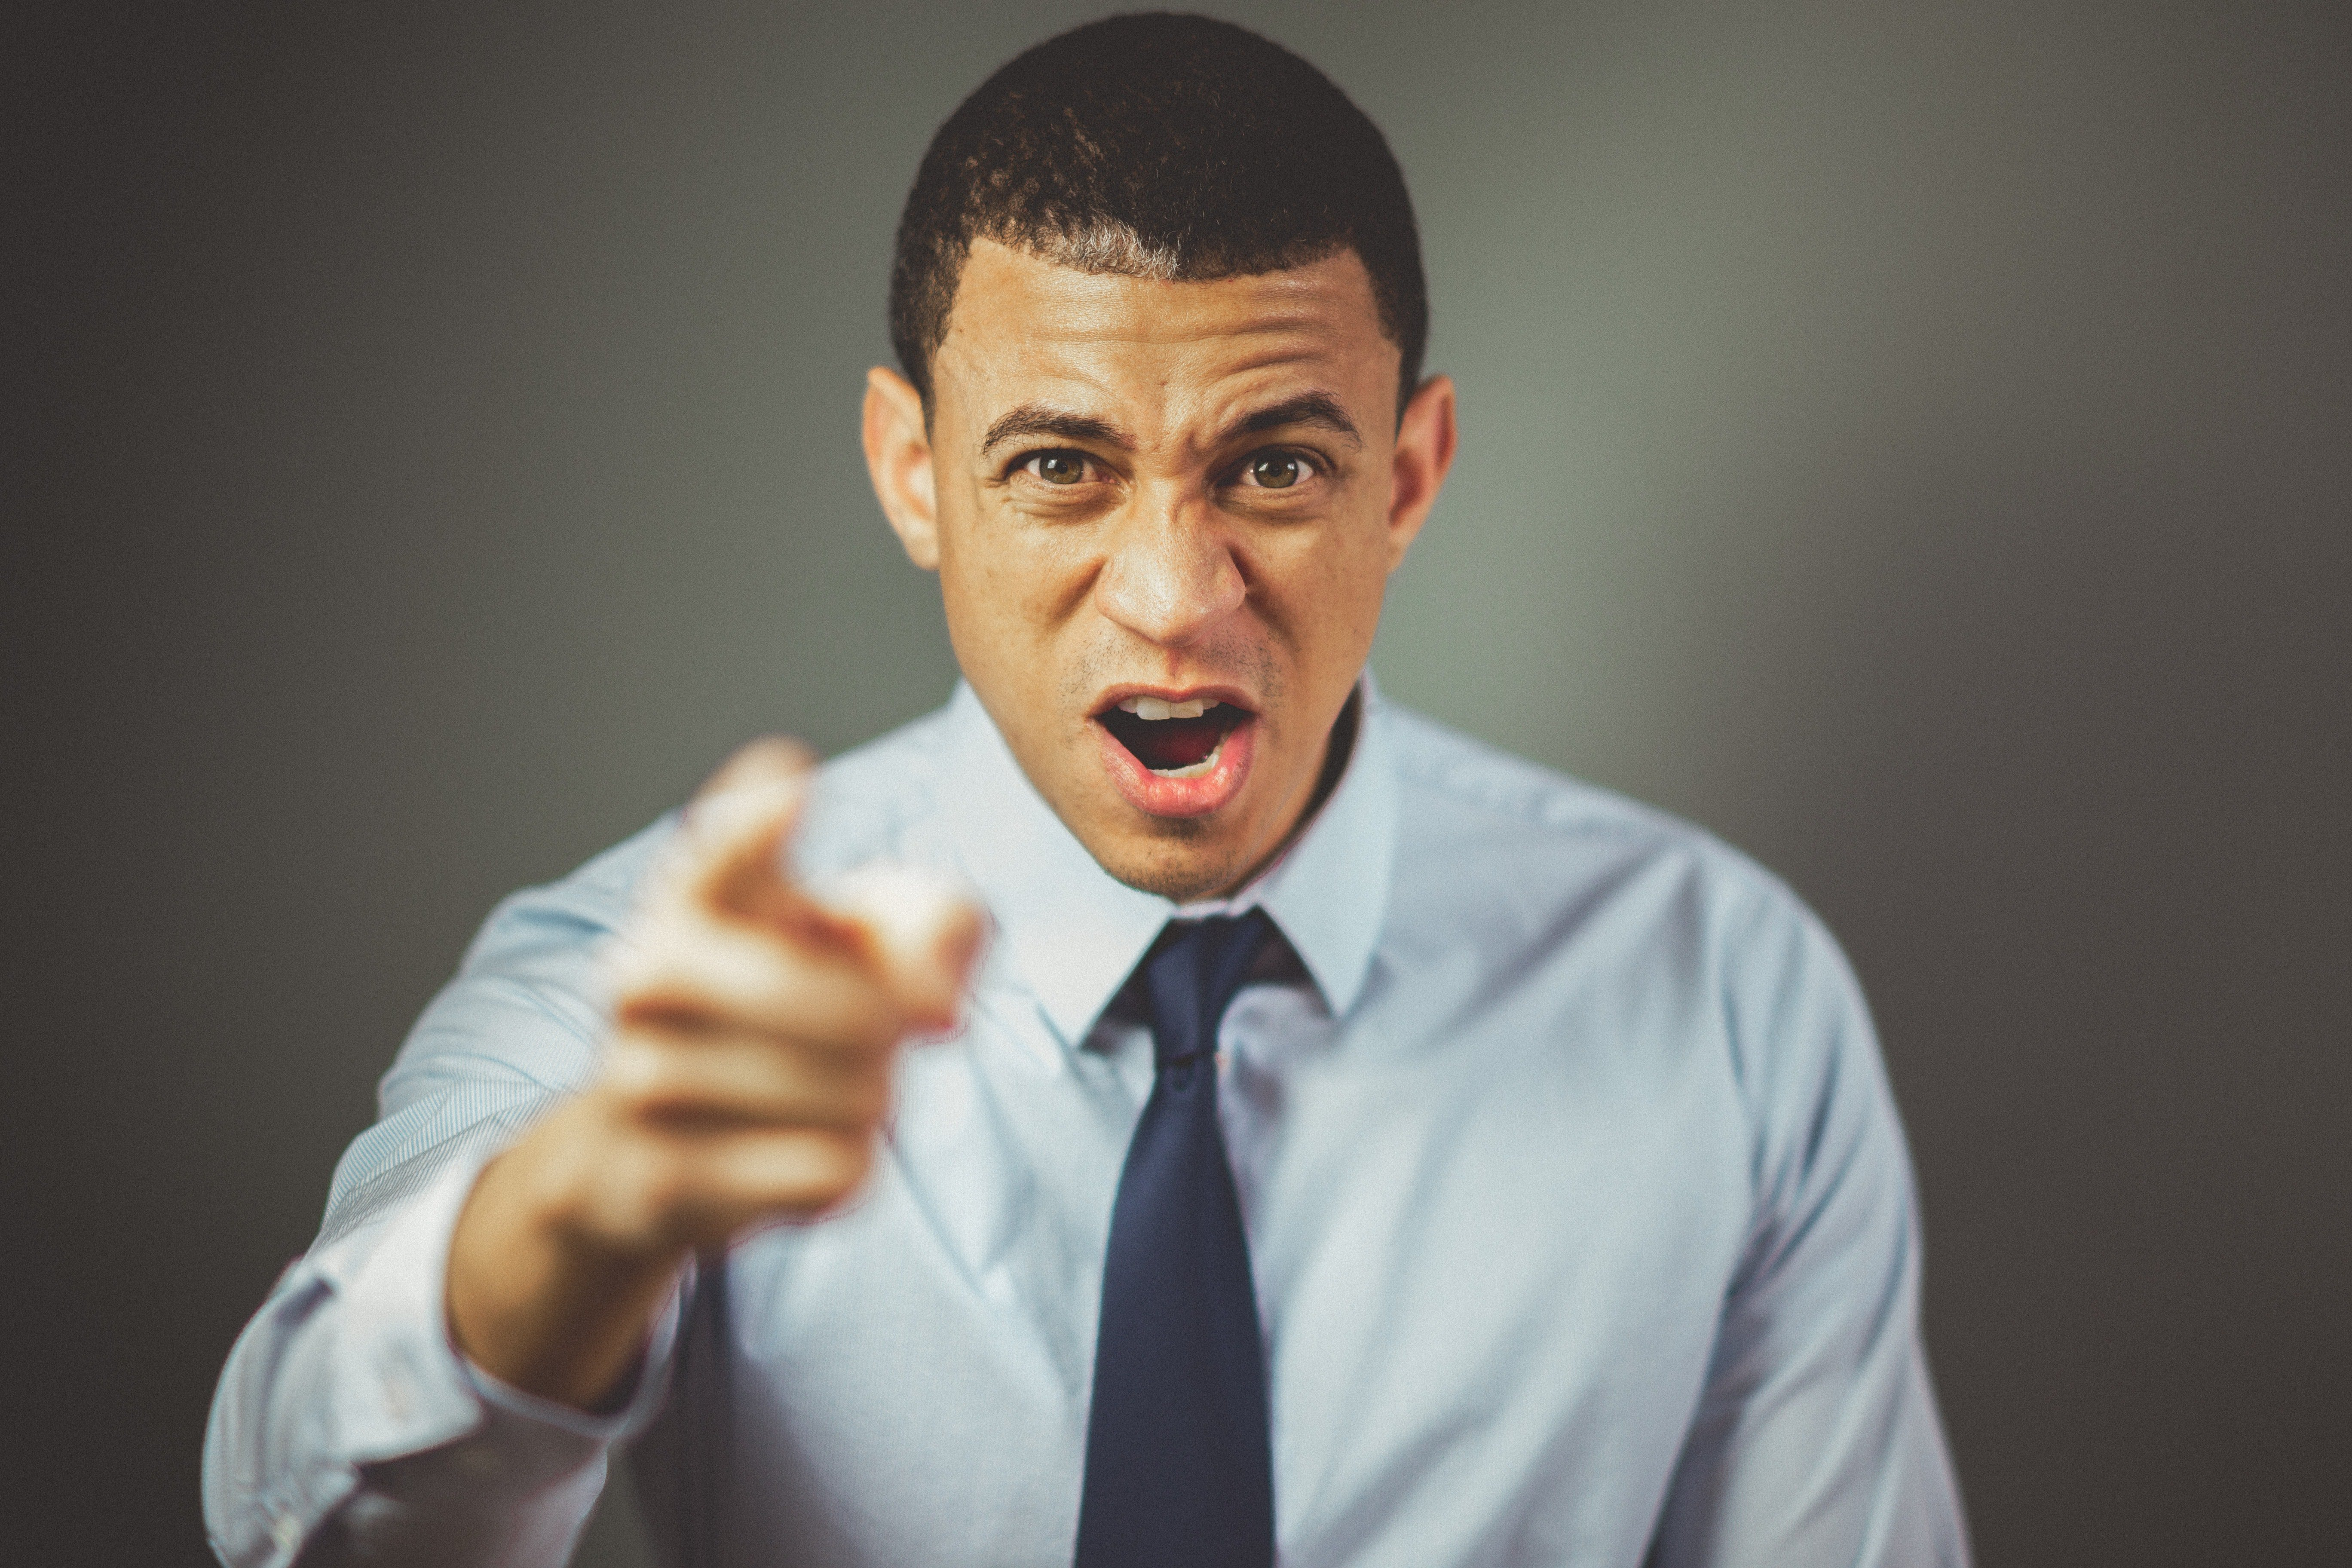 An angry man pointing his forefinger in front of him. | Photo: Pexels